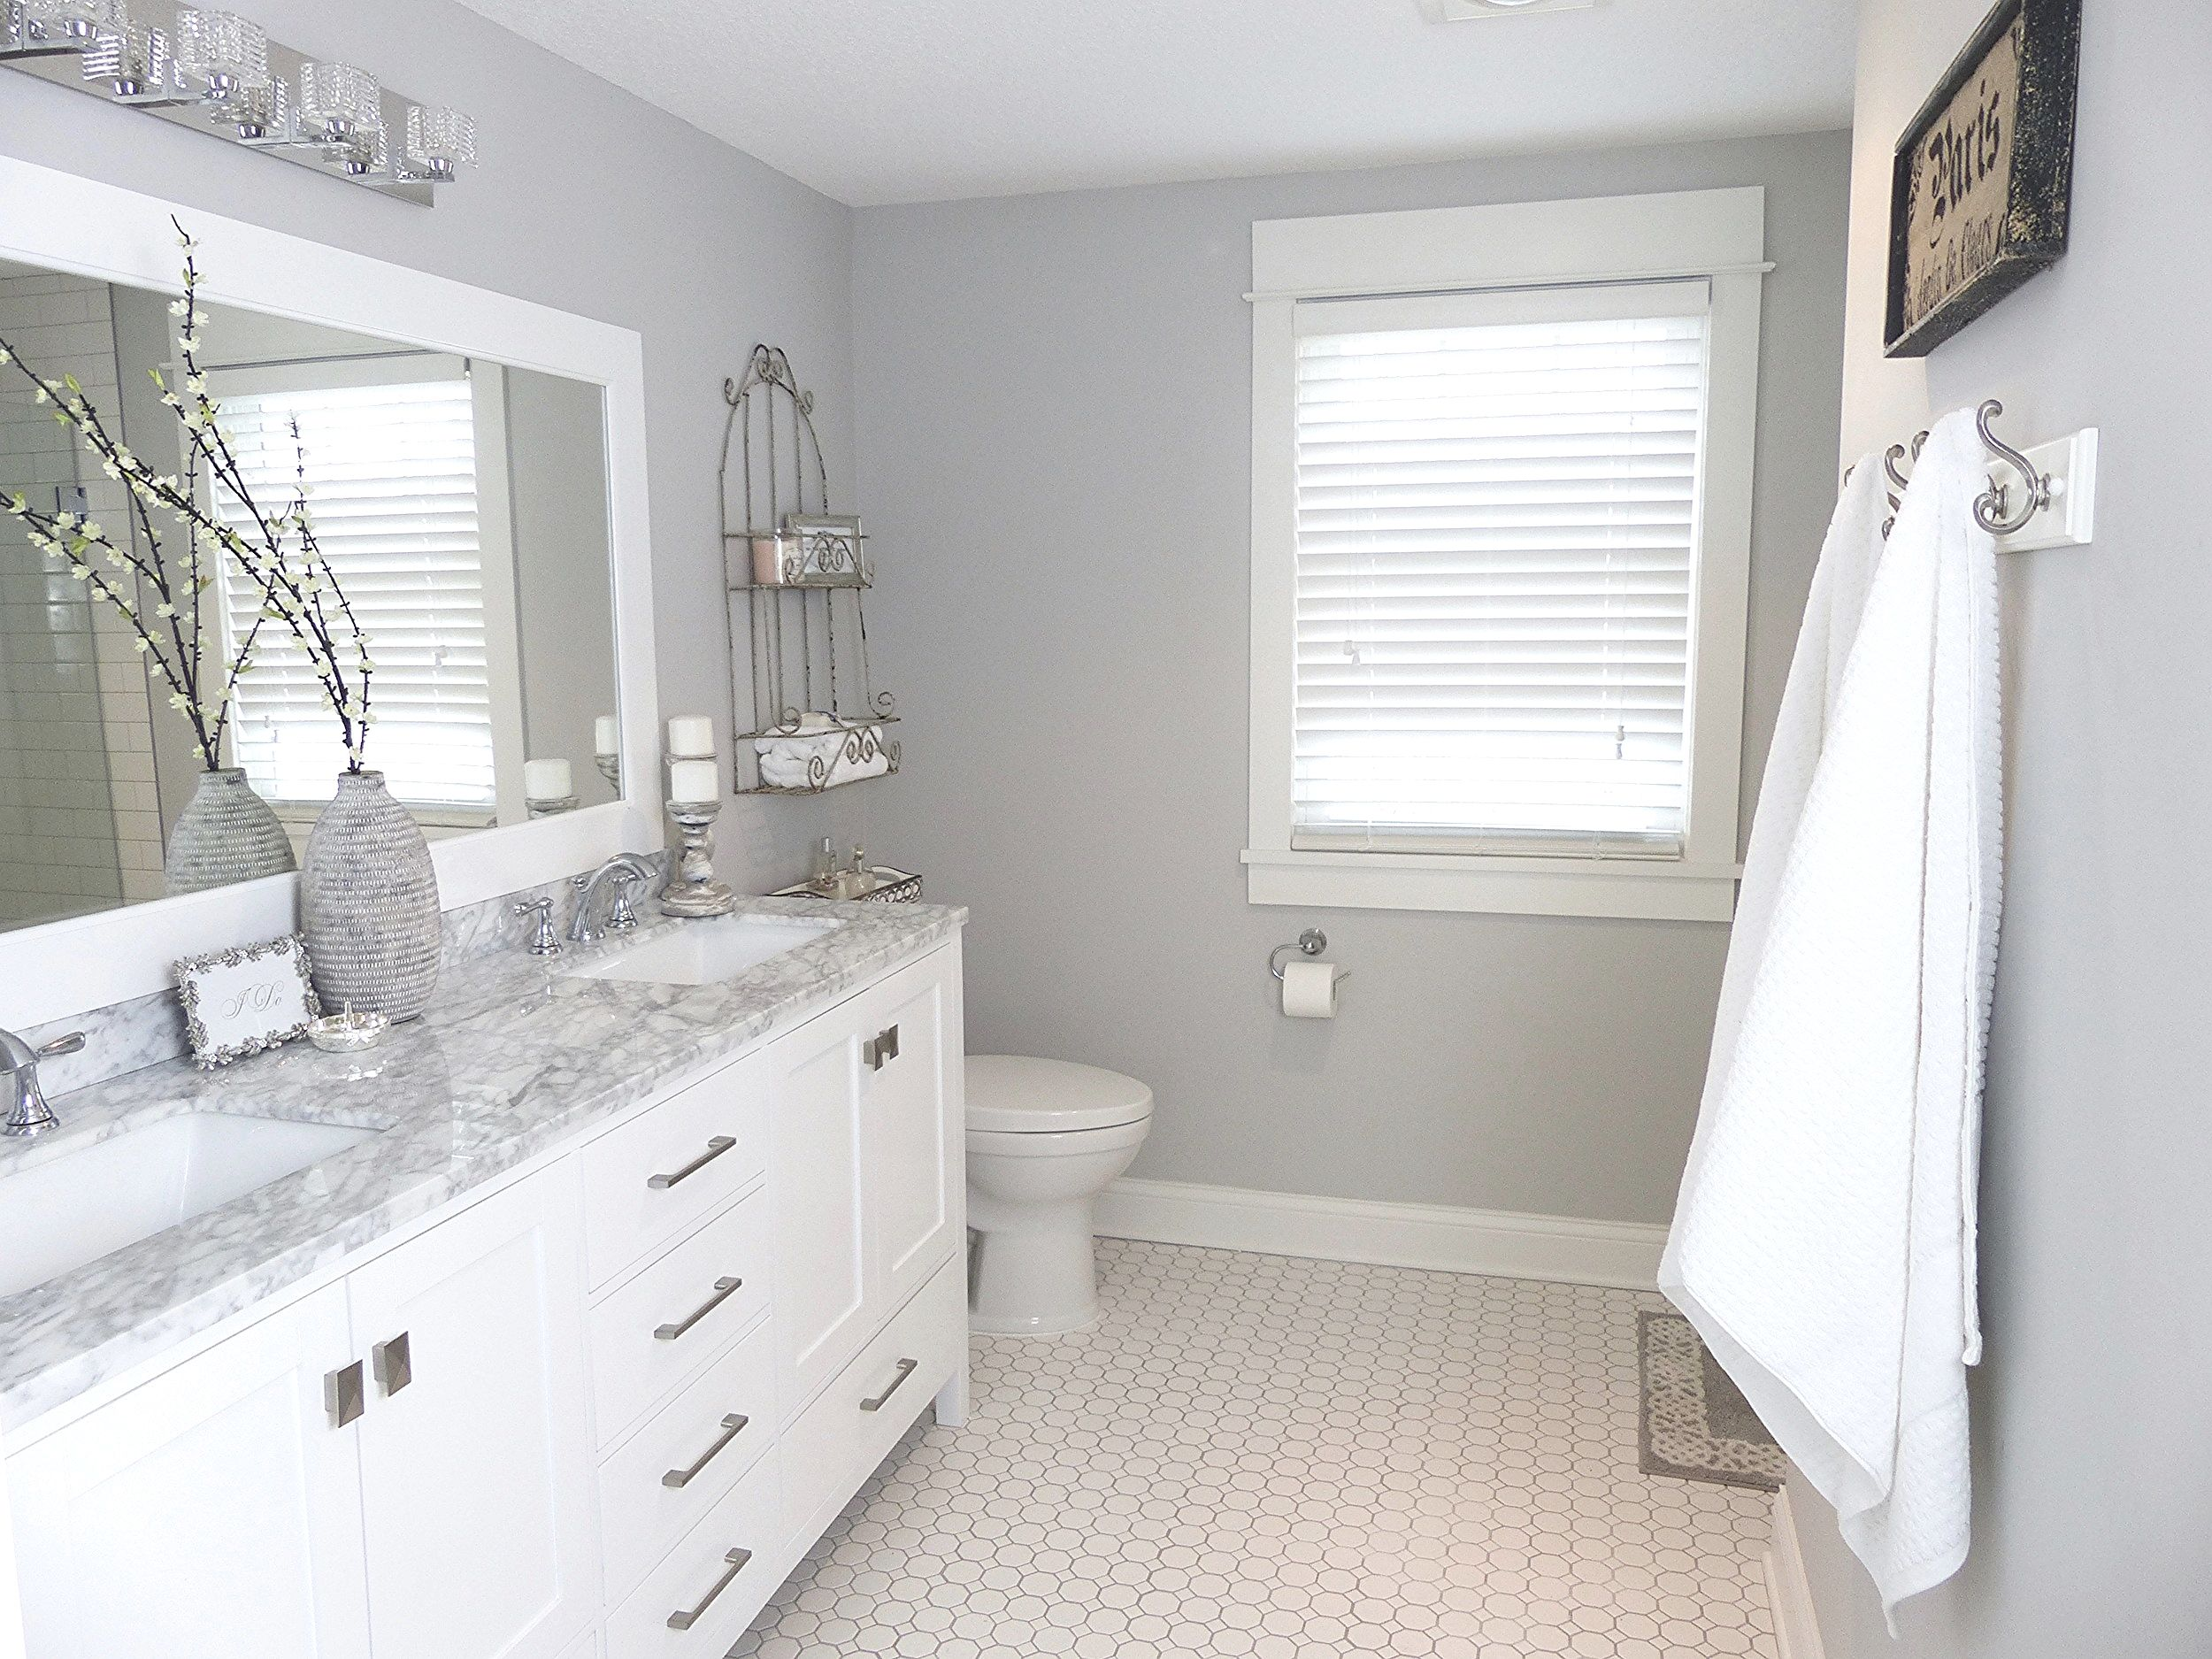 white and grey bathroom | bathrooms remodel, bathroom remodel cost, basement bathroom remodeling